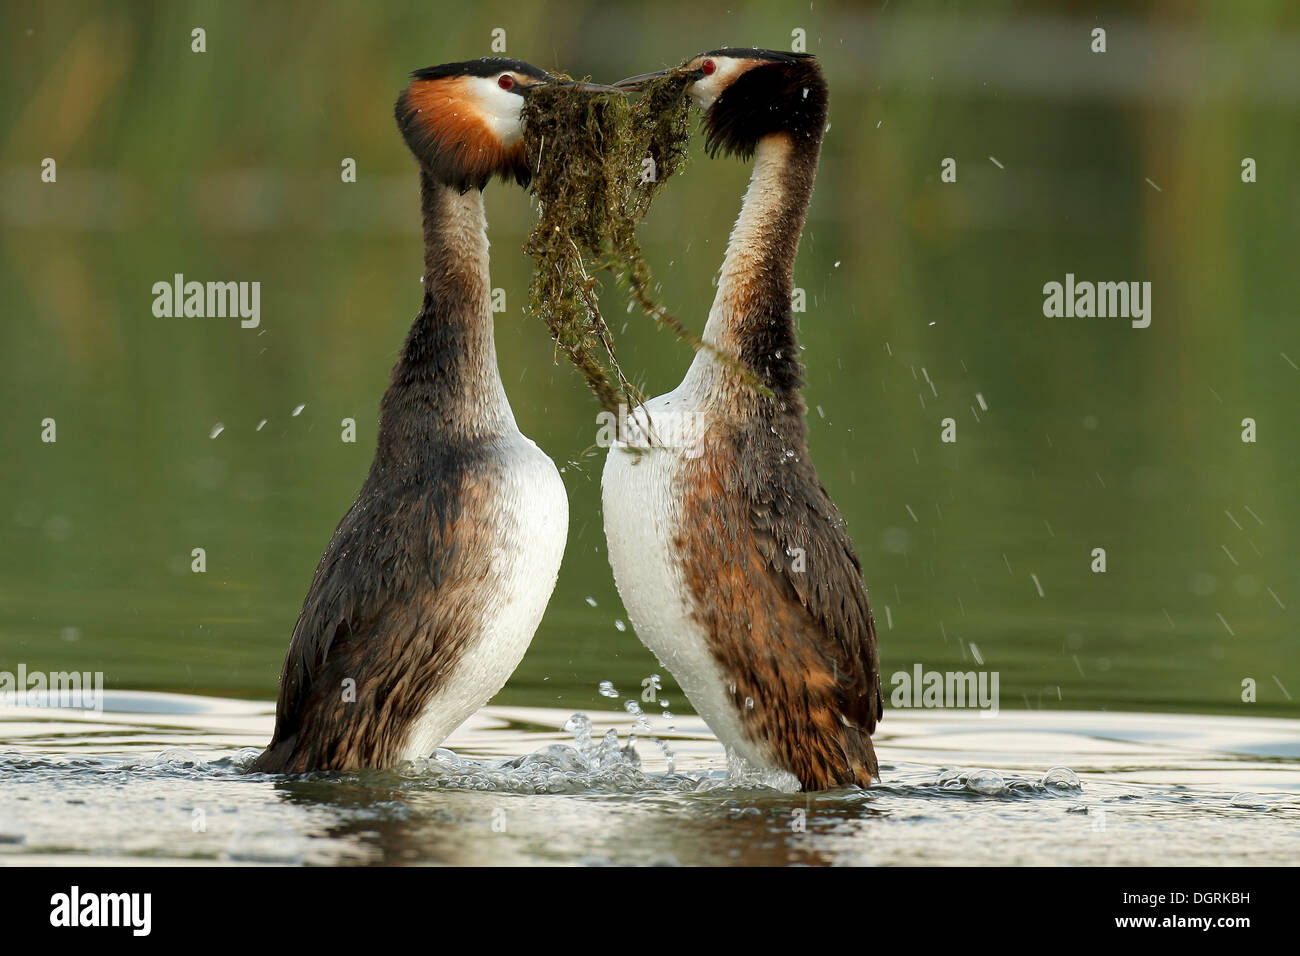 Great Crested Grebe (Podiceps cristatus) pair in courtship, transfer of nesting material, Drosedower Bek - Stock Image